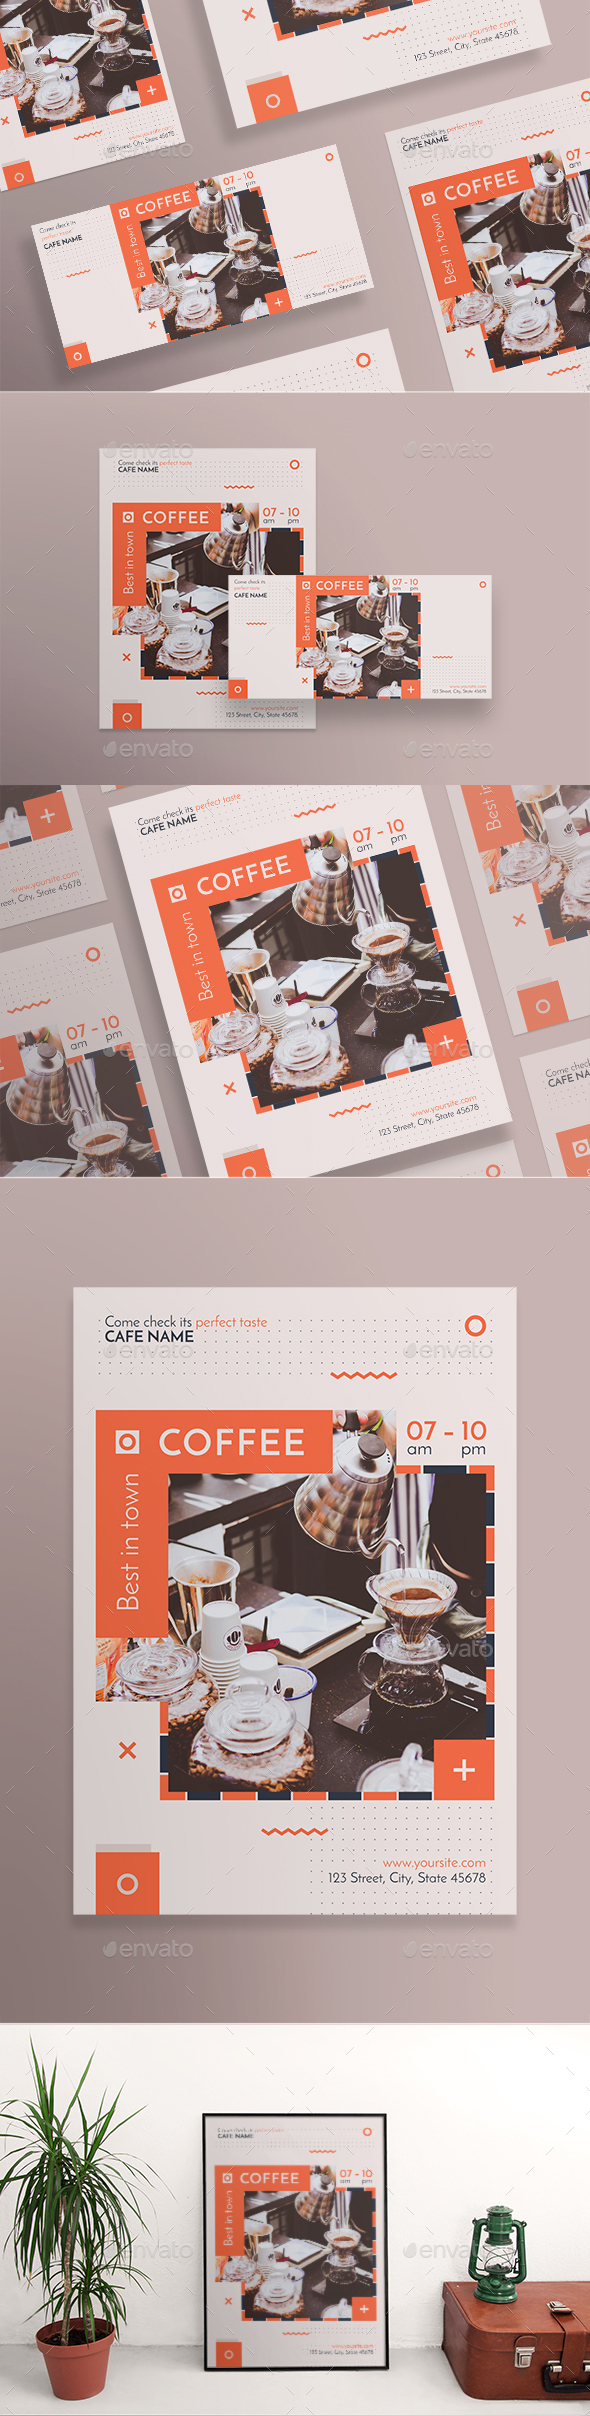 Coffee Shop Flyers - Restaurant Flyers